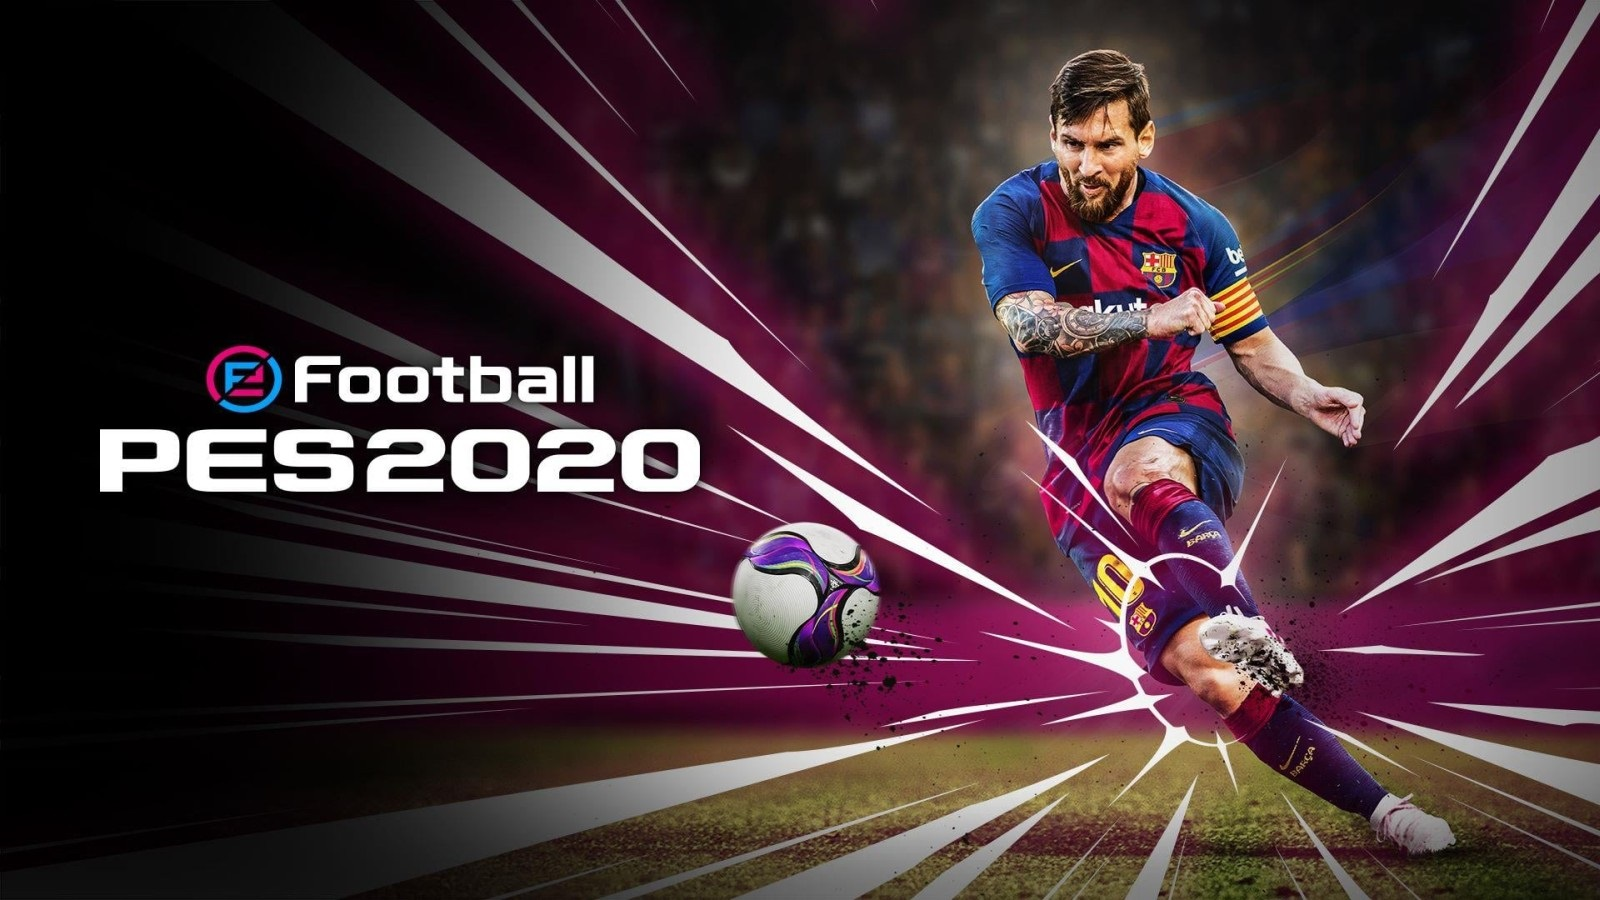 eFootball PES 2020; wallpaper: cover